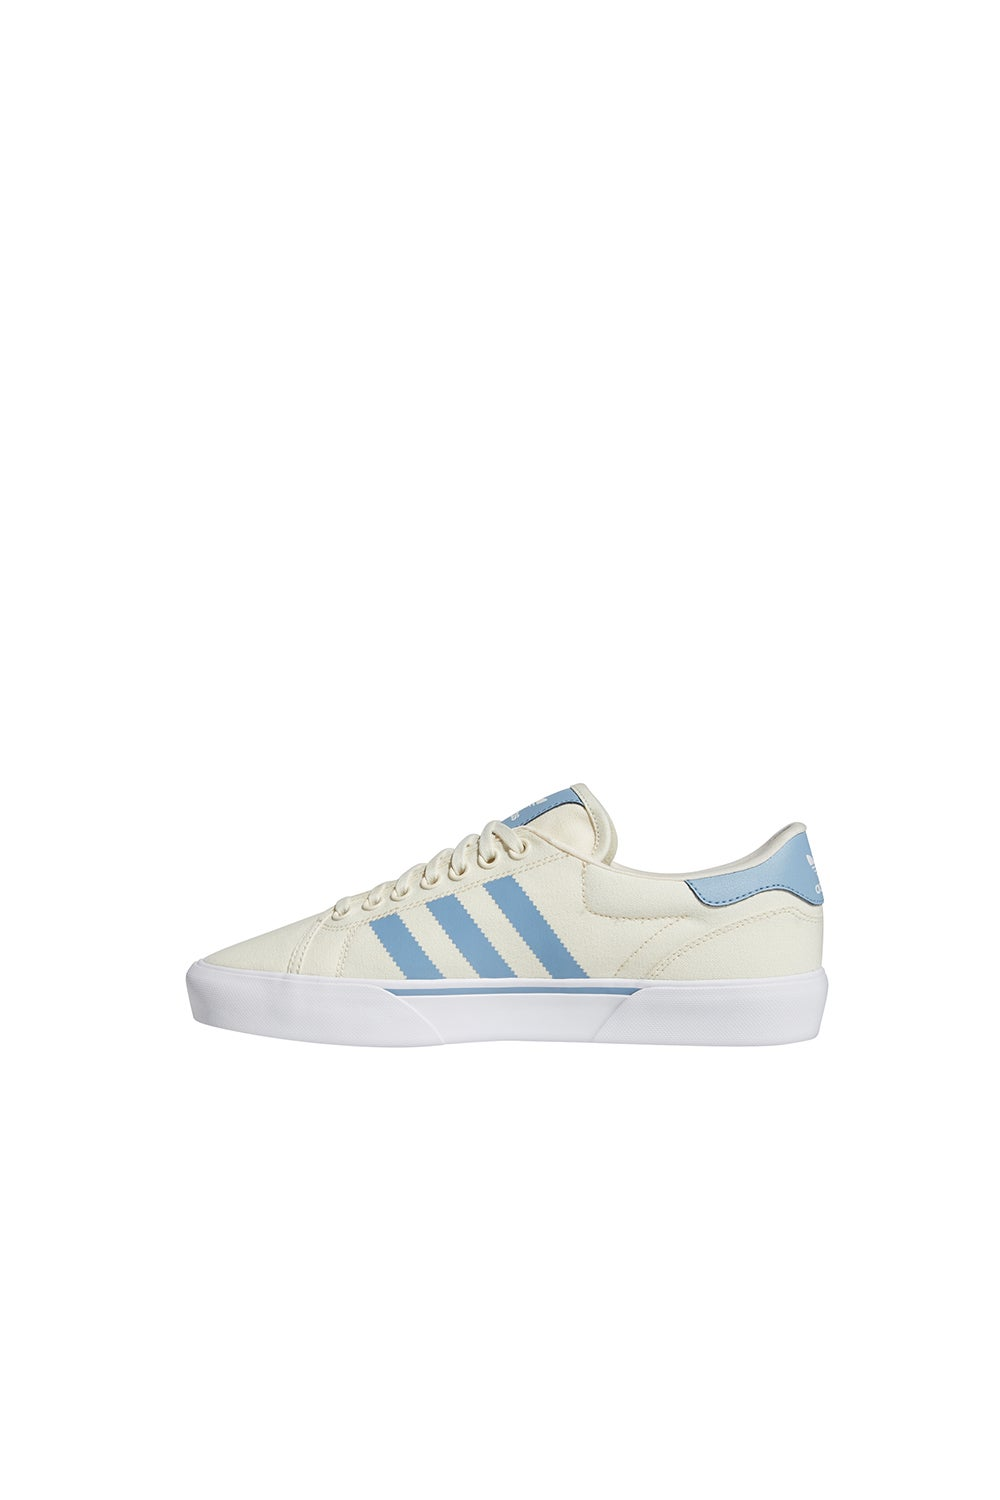 adidas Abaca Cloud White/Ambient Sky